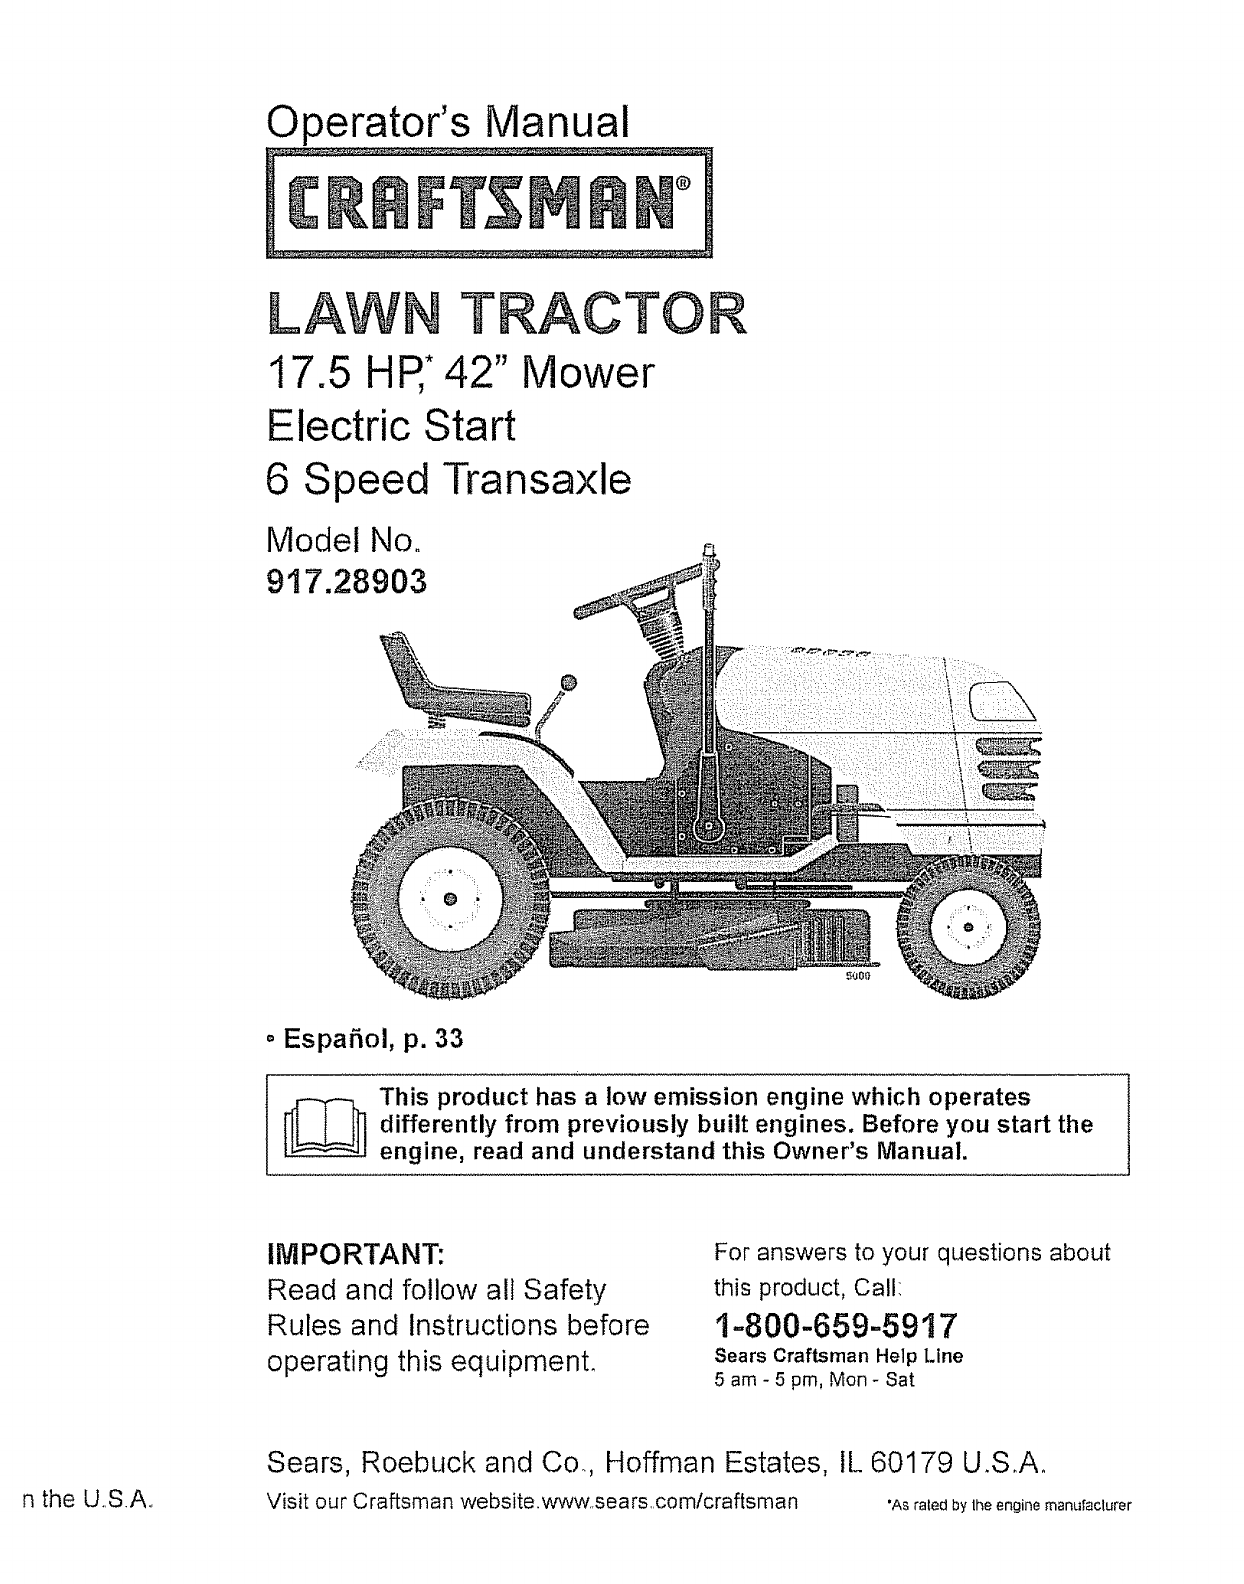 cb1648fd ba11 4ad4 80be 7014e24be2a7 bg1 craftsman riding lawn mower parts model 502254280 sears craftsman lt1000 wiring diagram at gsmx.co